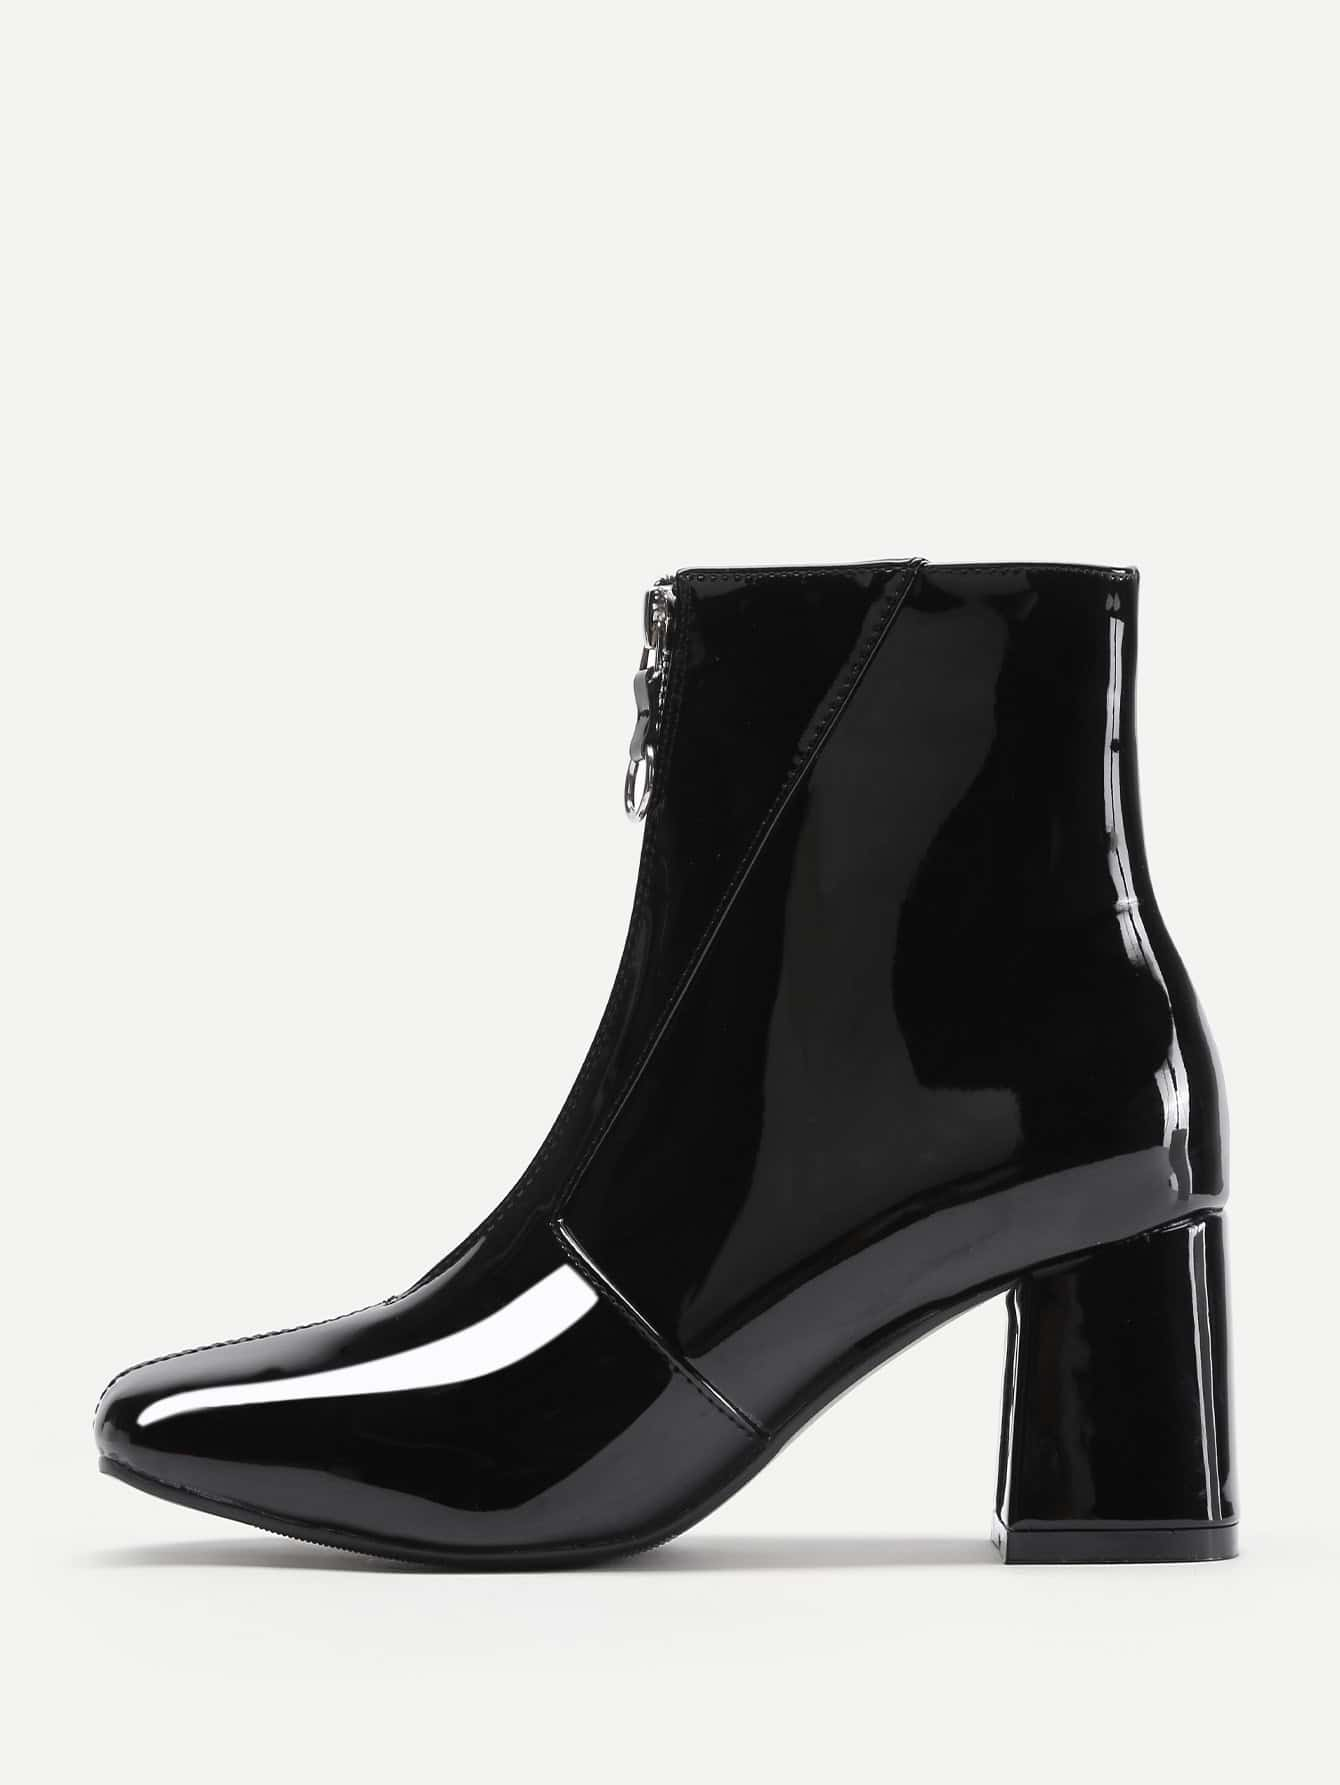 5966684fad0 Front Zipper Patent Leather Ankle Boots EmmaCloth-Women Fast Fashion ...